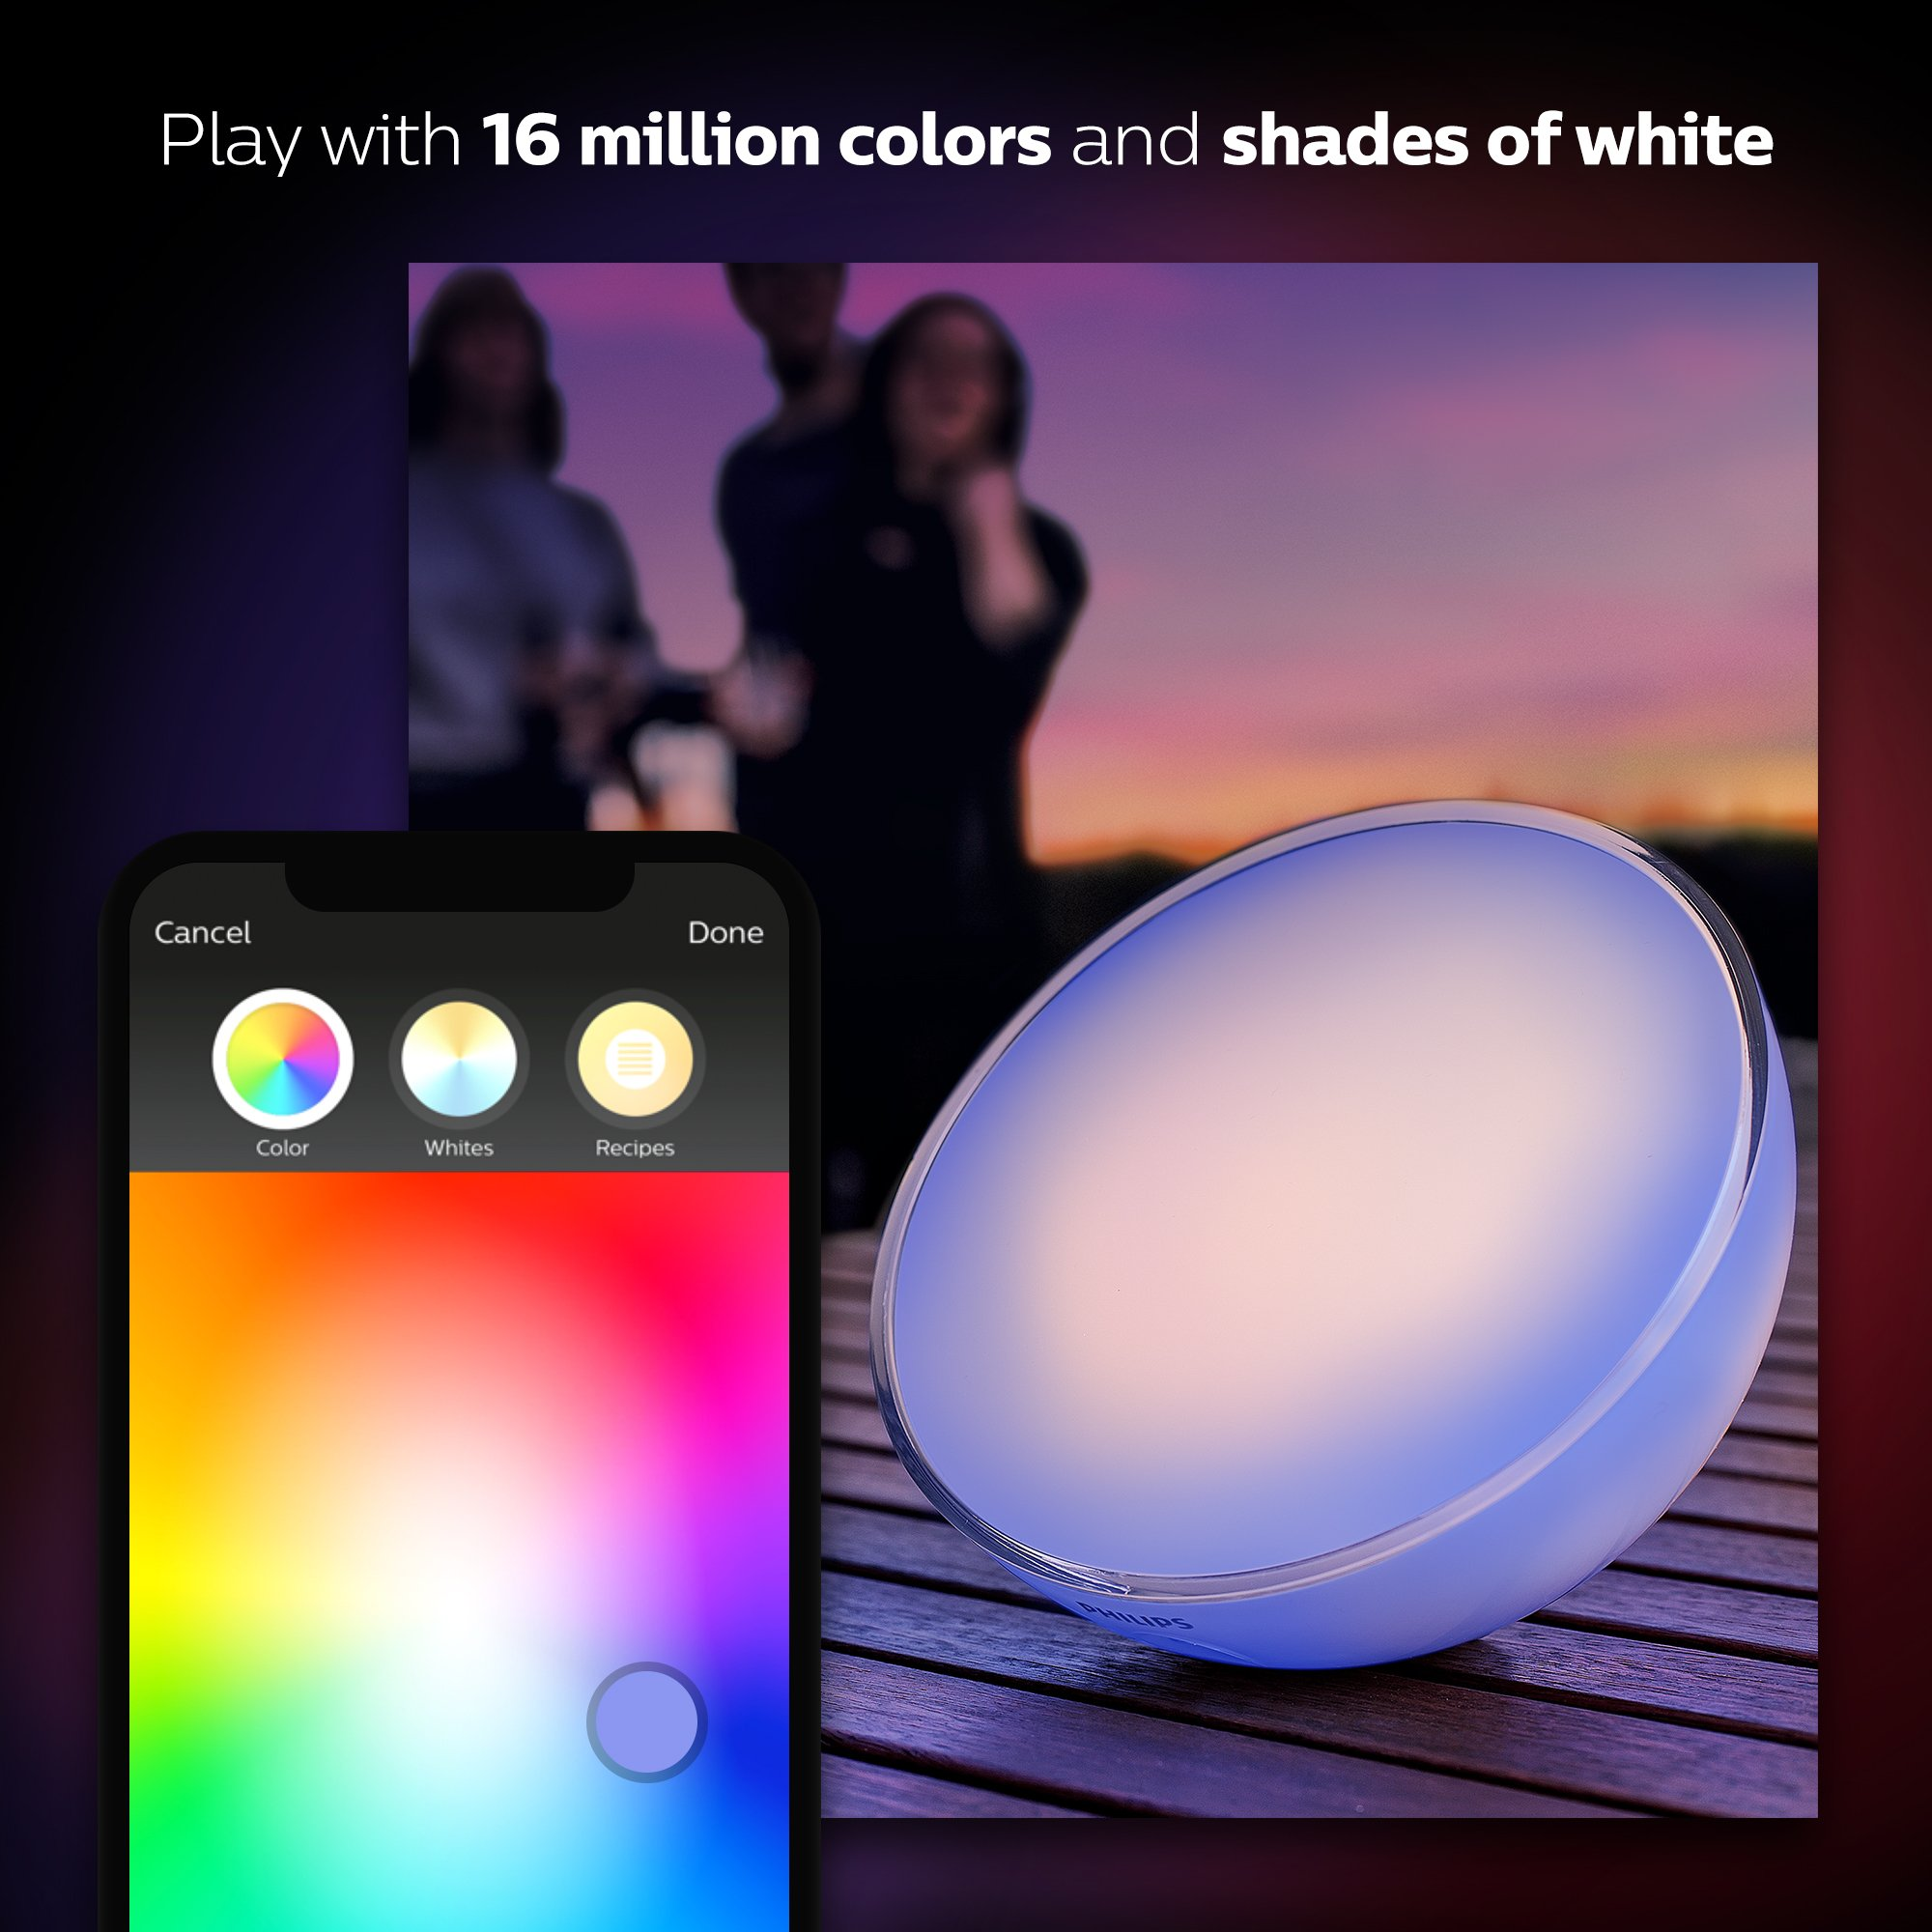 Philips Hue Go White and Color Portable Dimmable LED Smart Light Table Lamp (Requires Hue Hub, Works with Alexa, HomeKit and Google Assistant) by Philips Hue (Image #6)